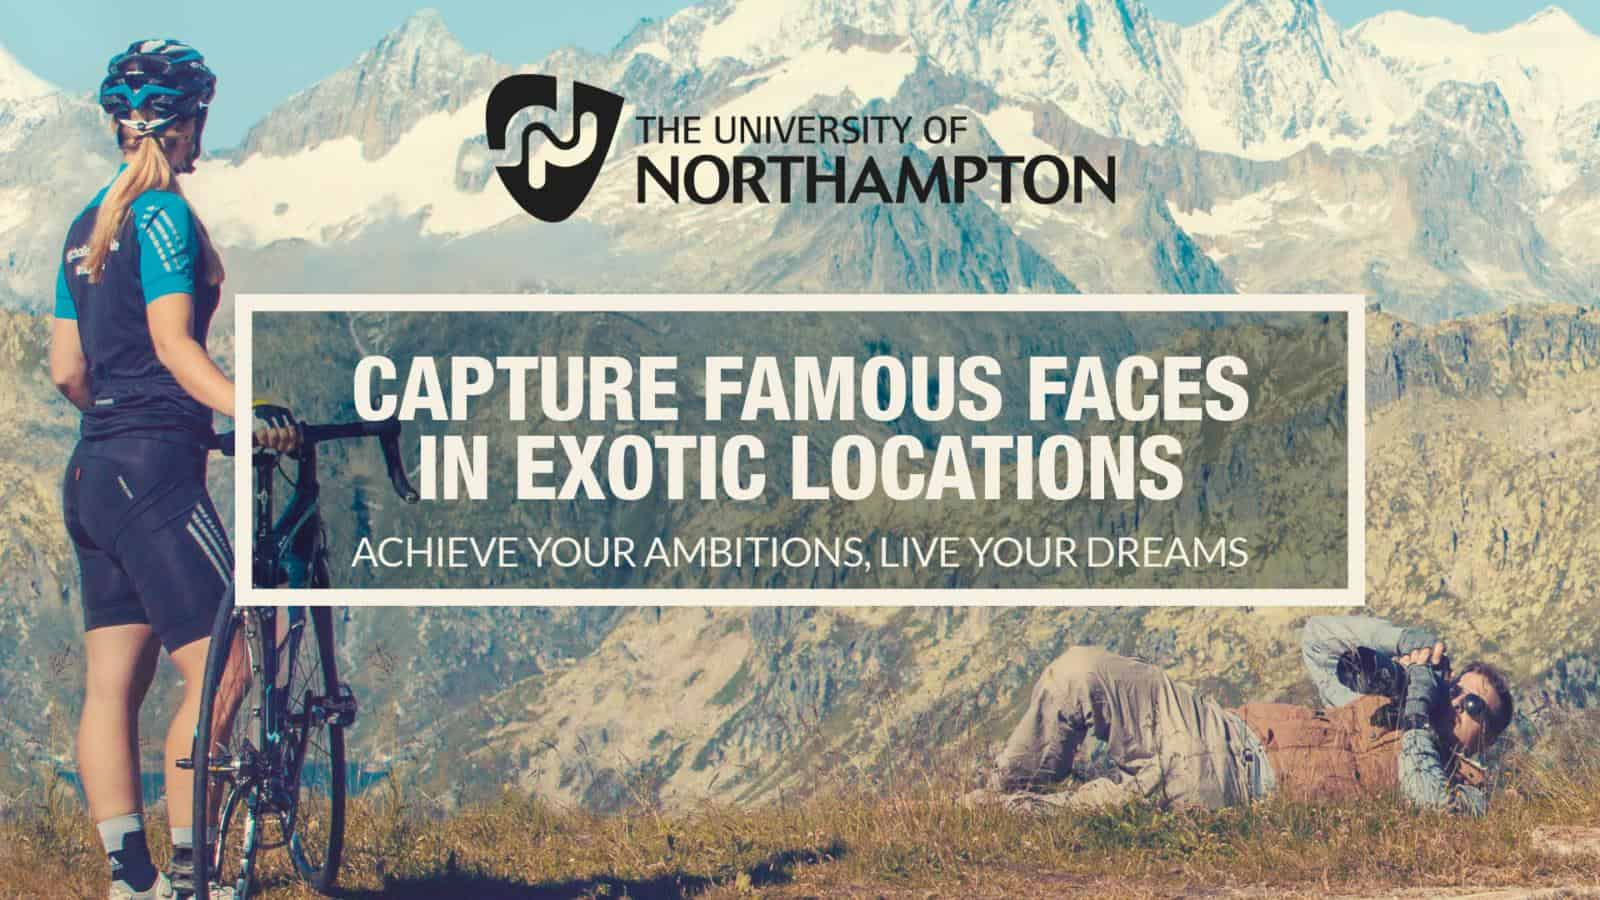 University of Northampton recruitment campaign